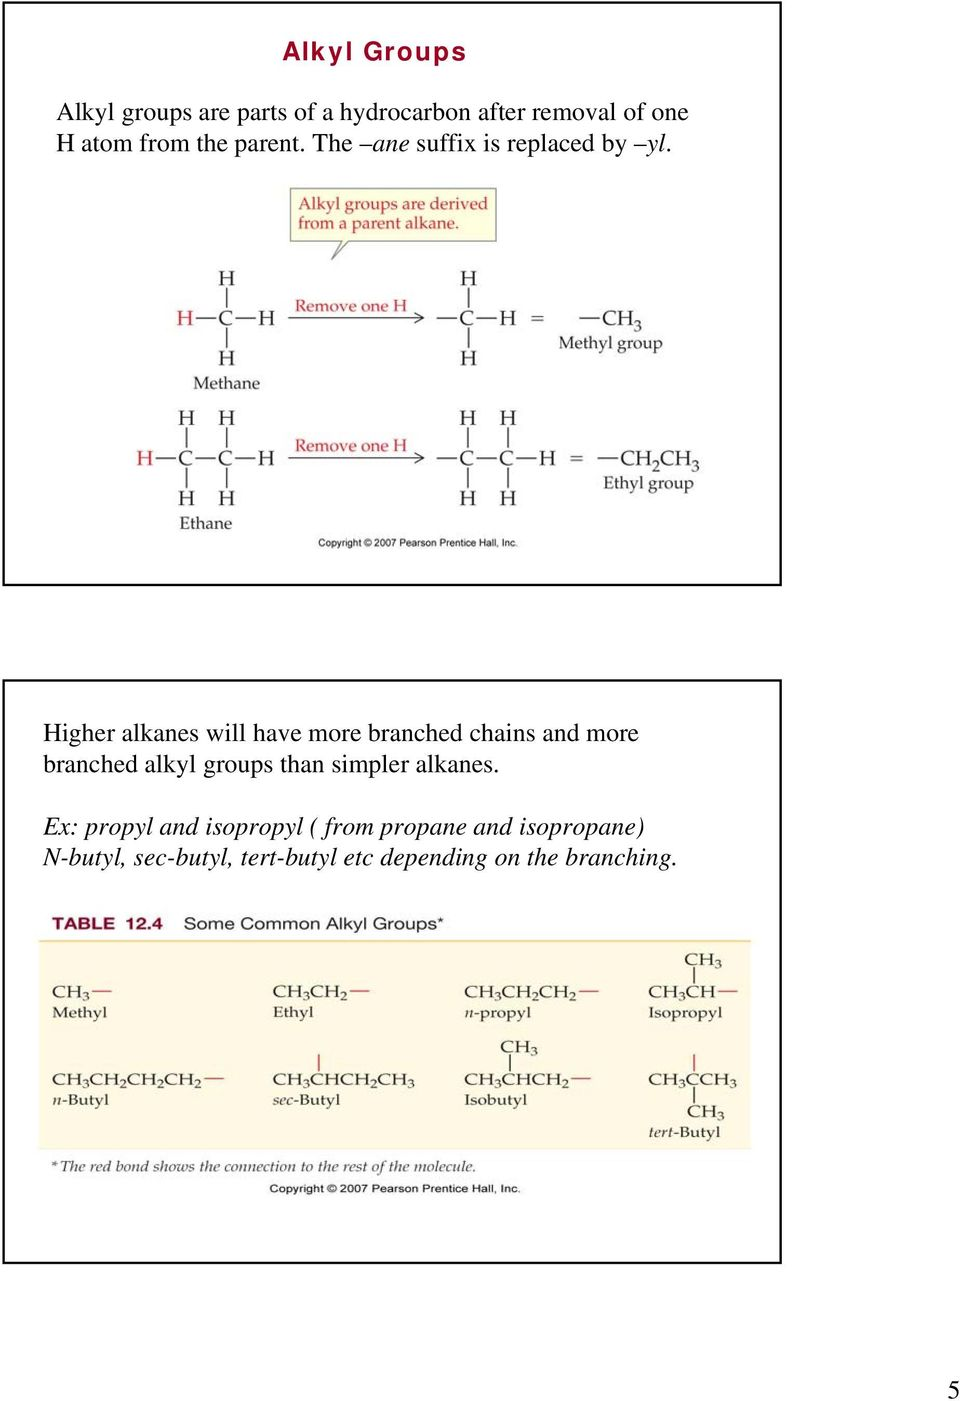 Higher alkanes will have more branched chains and more branched alkyl groups than